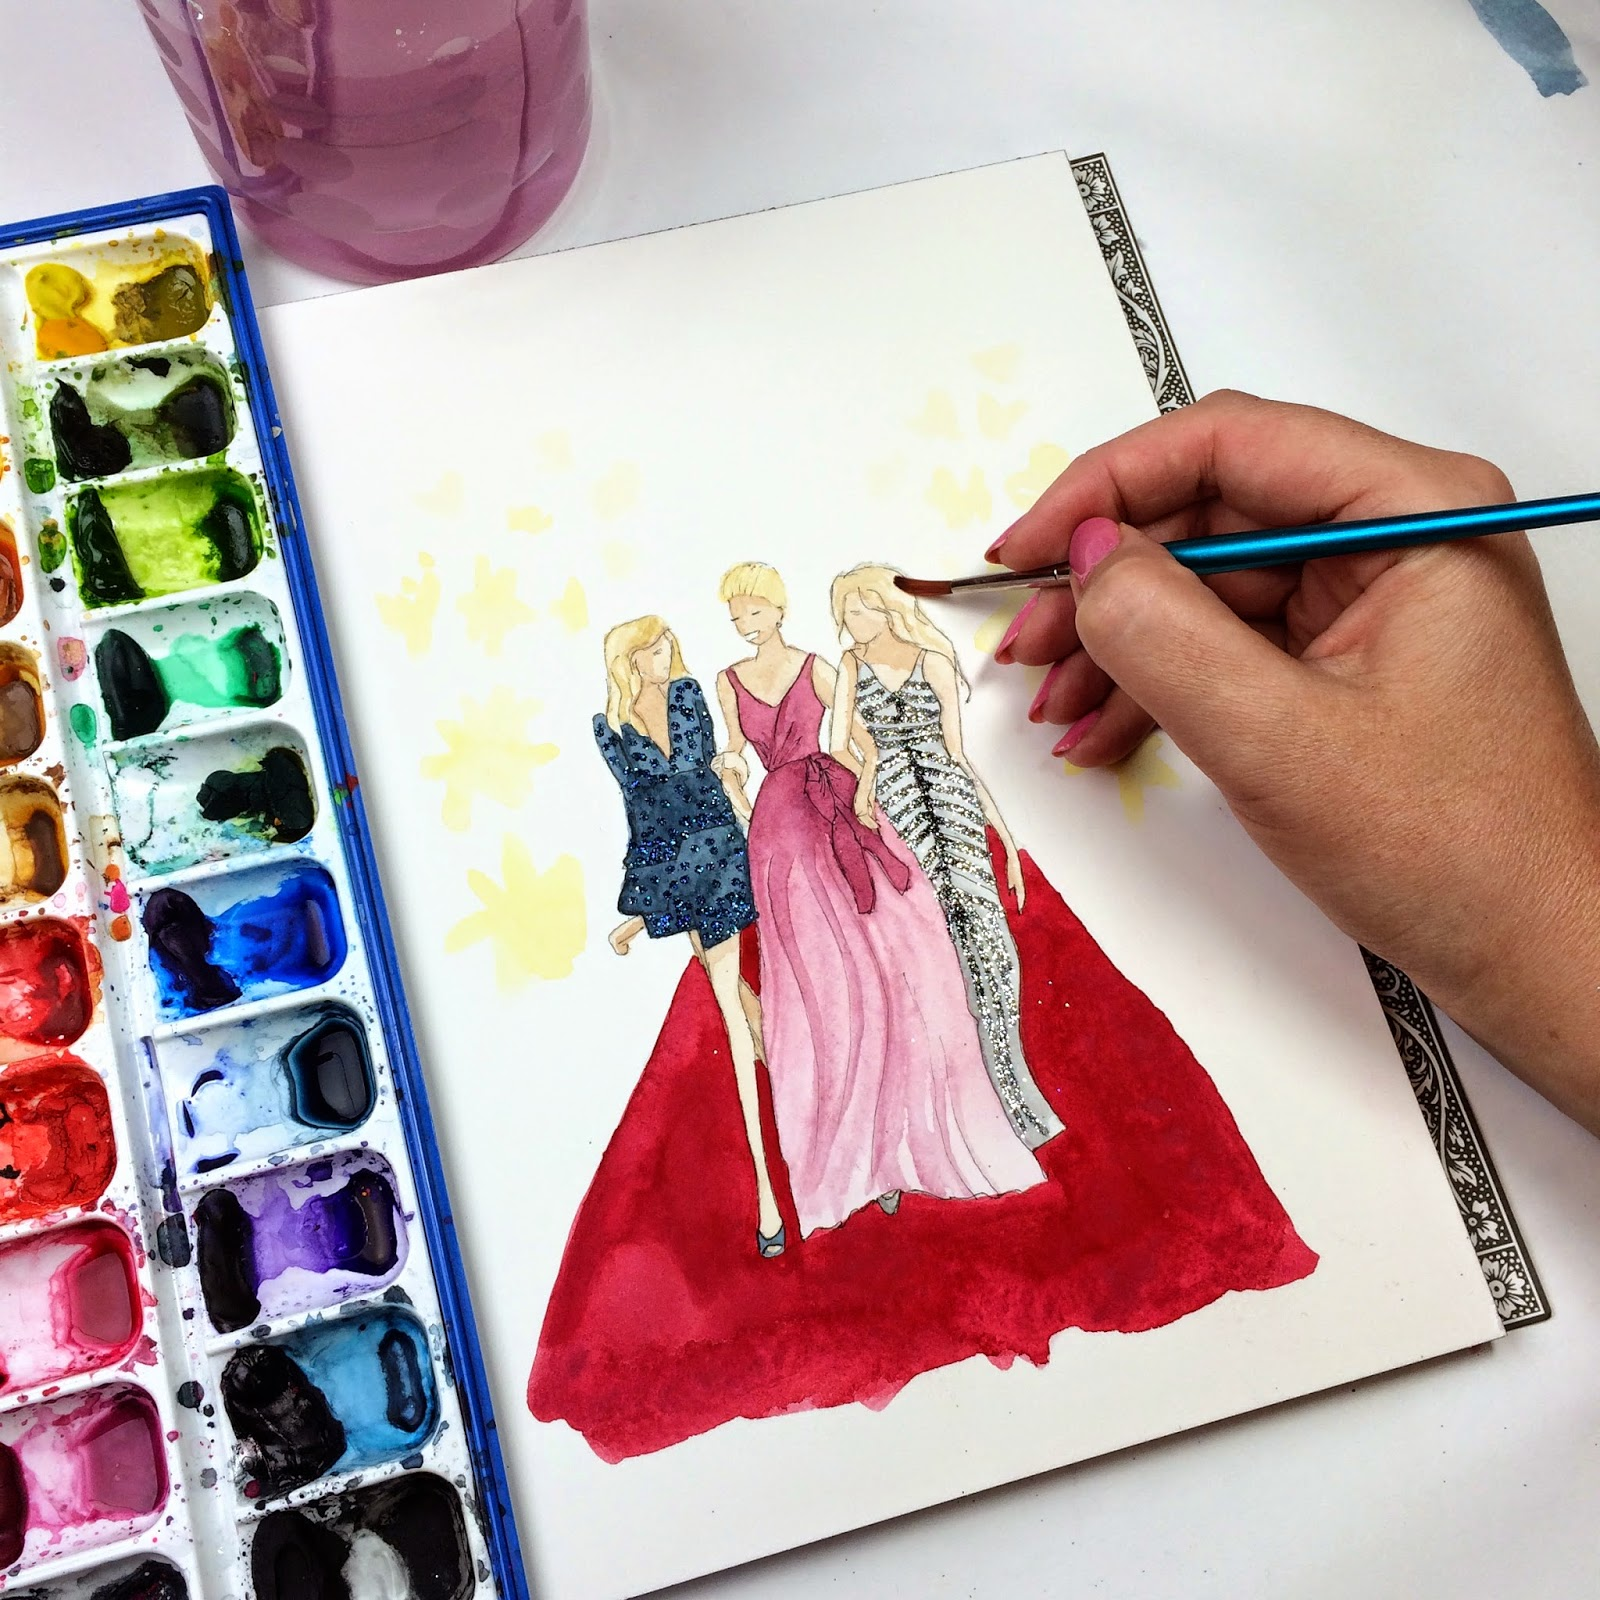 Emmys red carpet gowns in watercolor fashion illustration by Jessica Mack aka BrownPaperBunny